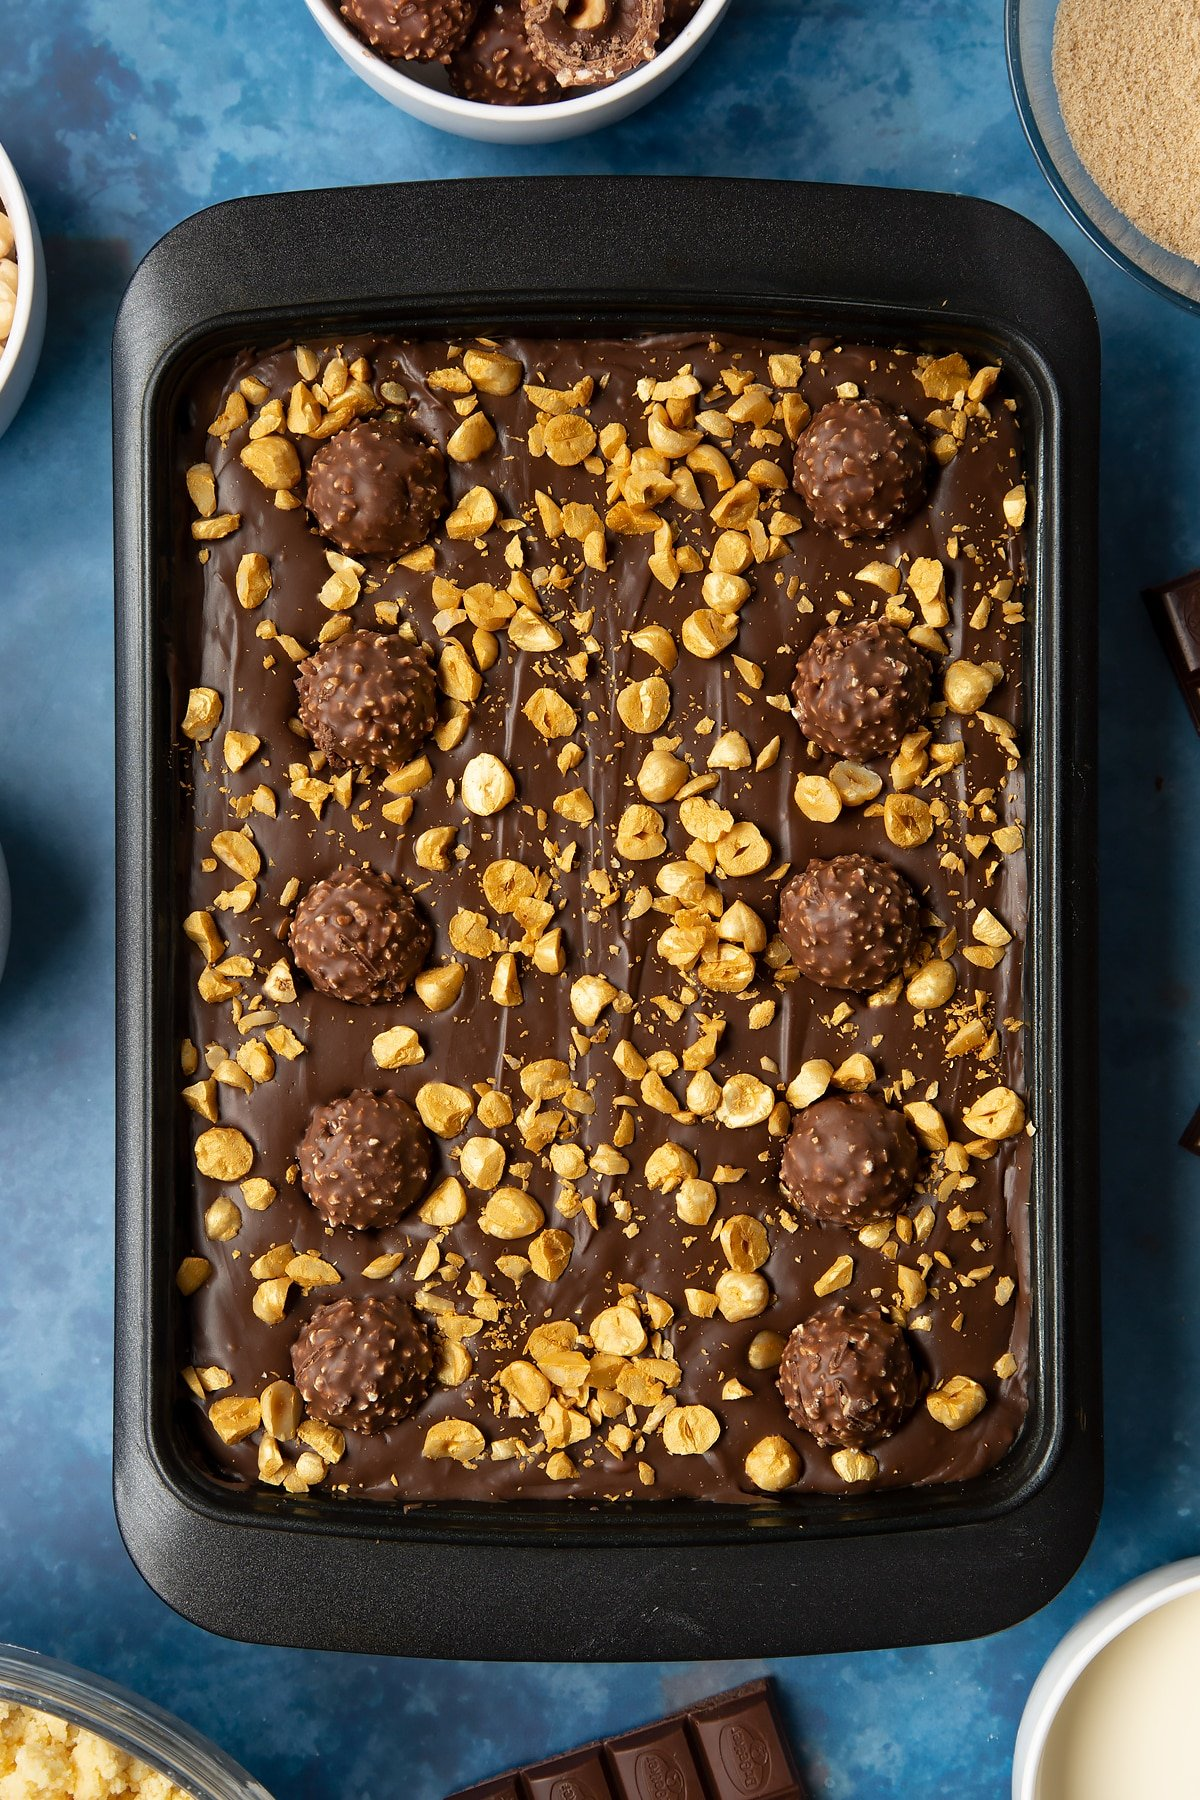 Finished and chilled Ferrero Rocher slice in a tray.